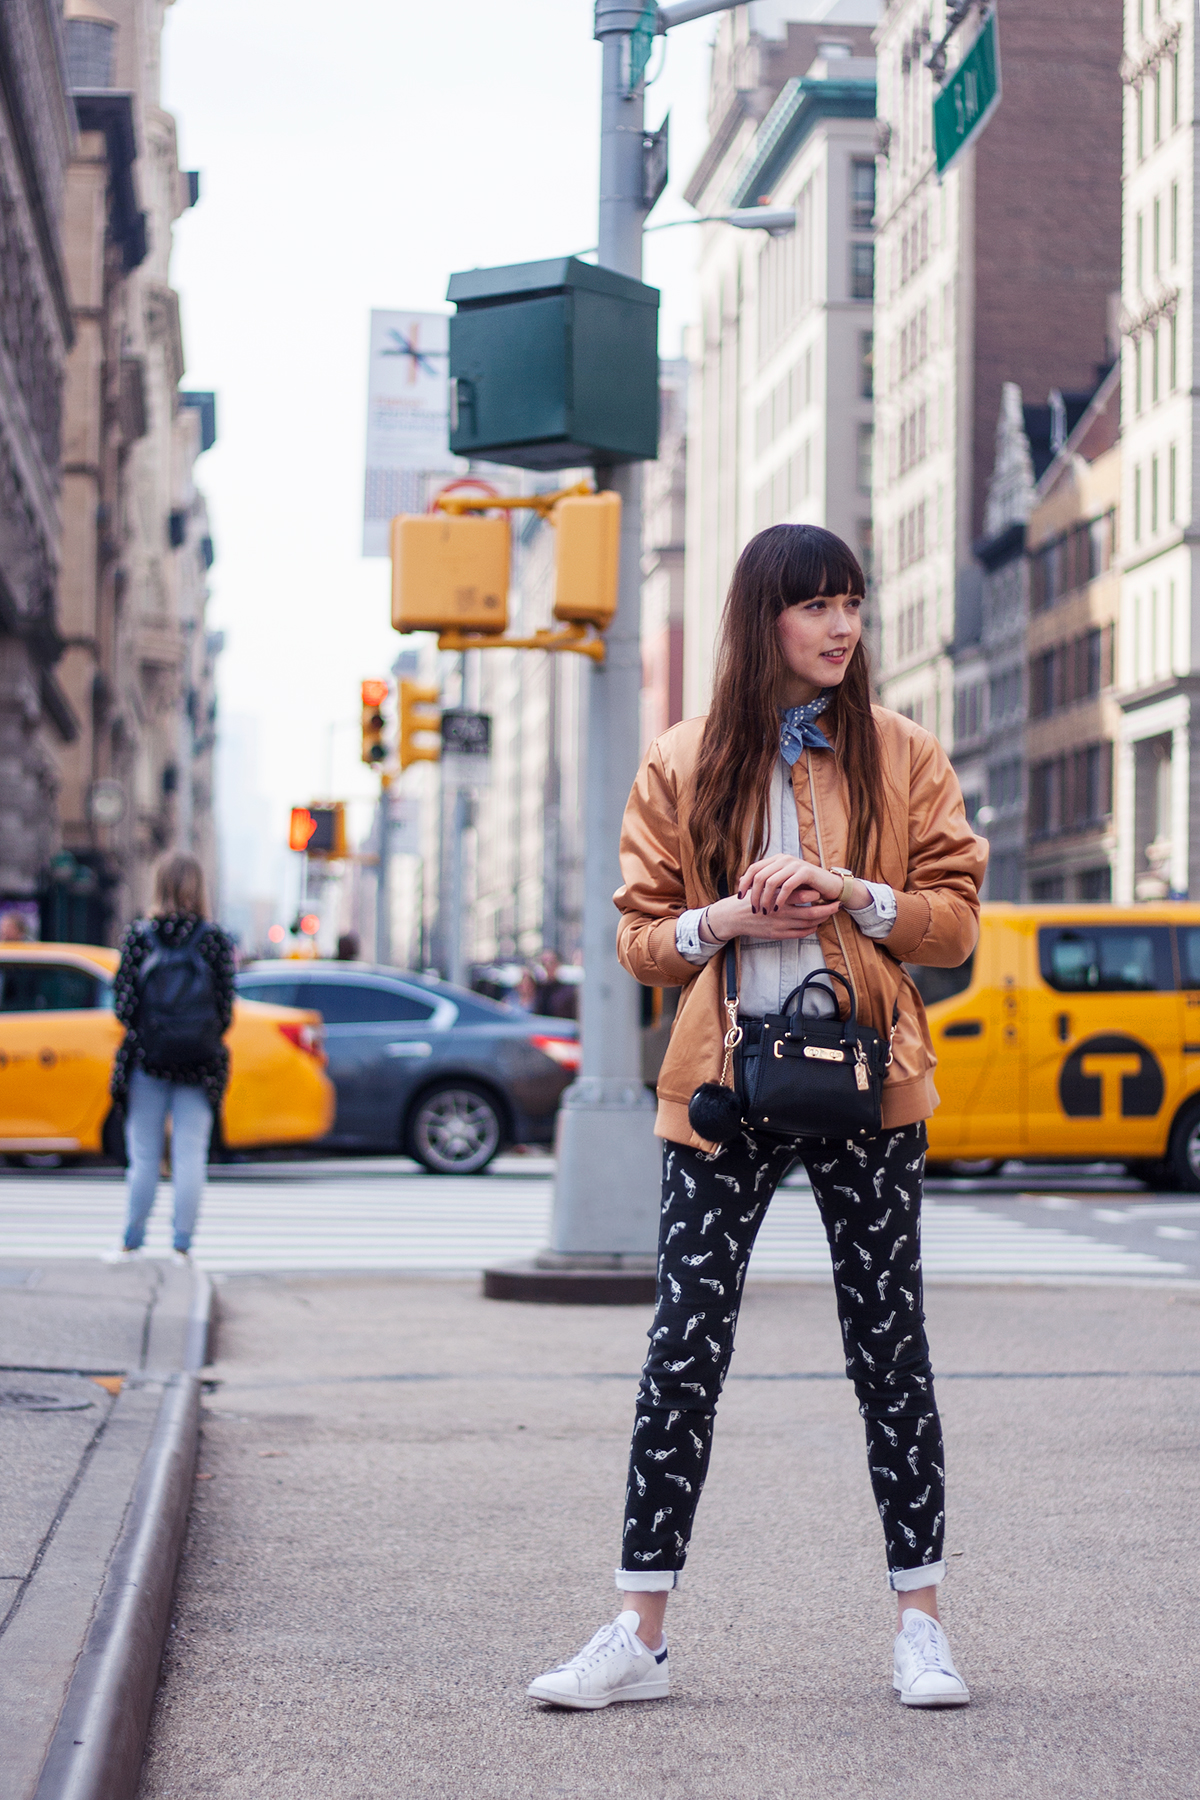 a-new-york-minute-cluse-watches-adpt-bomber-american-retro-jeans-1